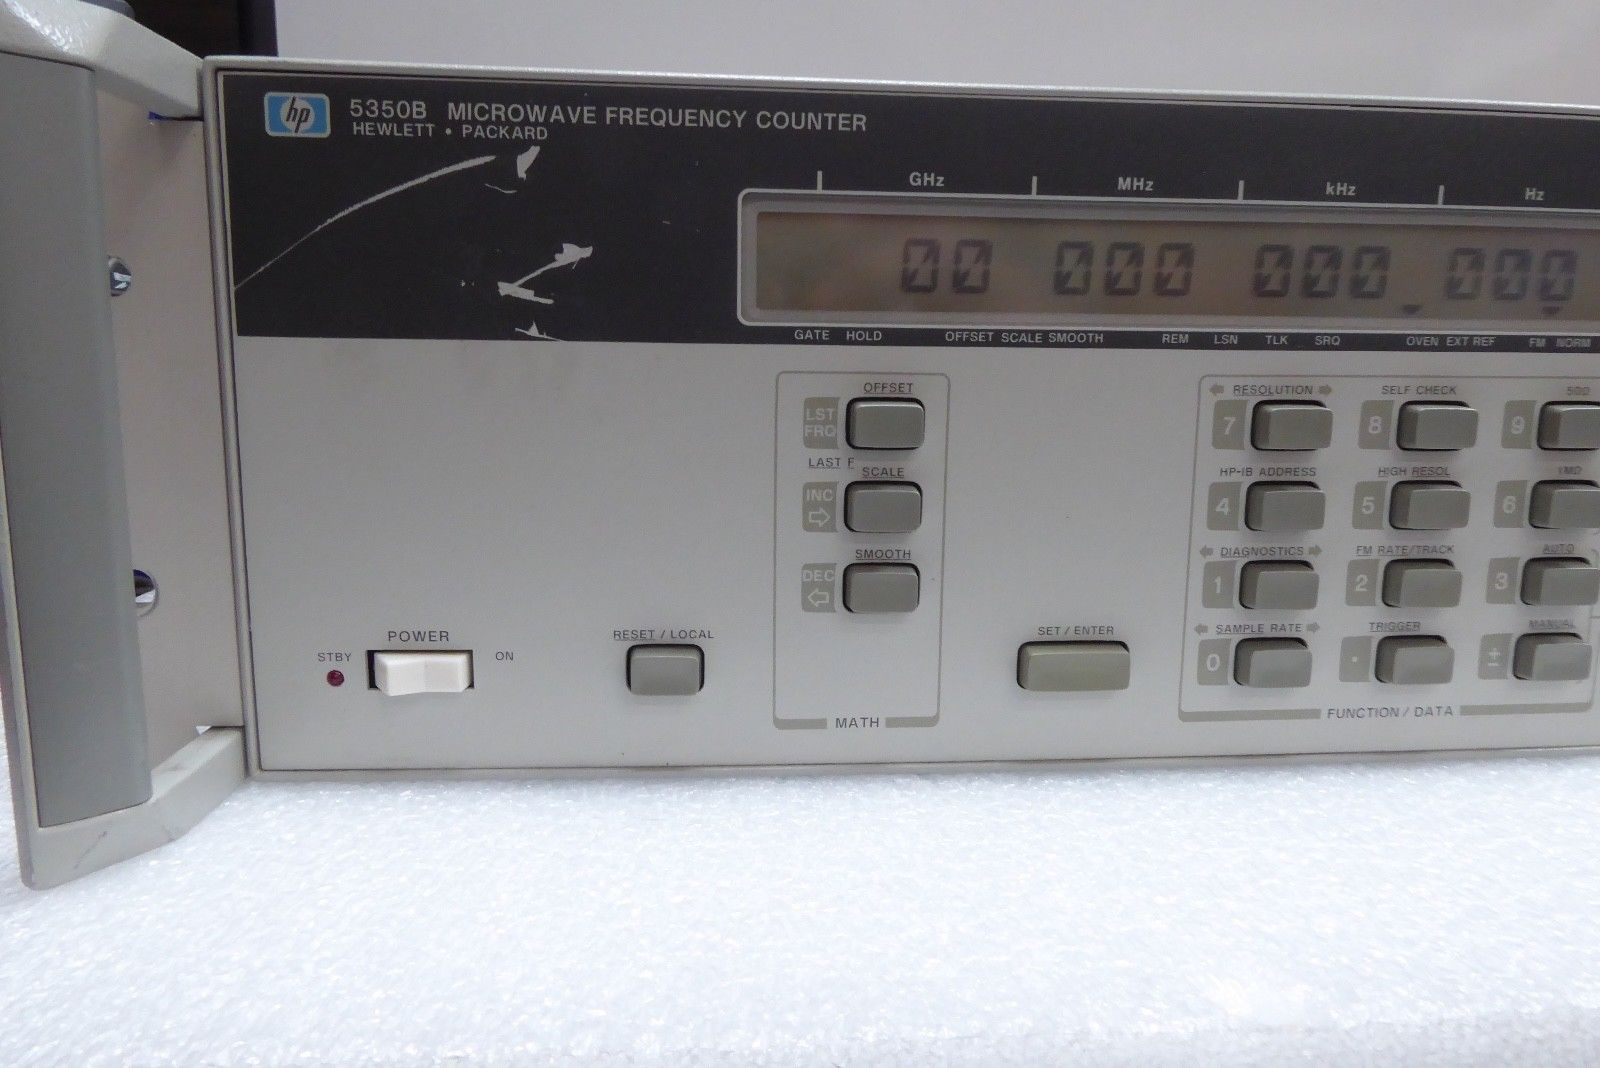 Hp 5350b Microwave Frequency Counter Opt 001 002 Oven Time Base Ebay Link